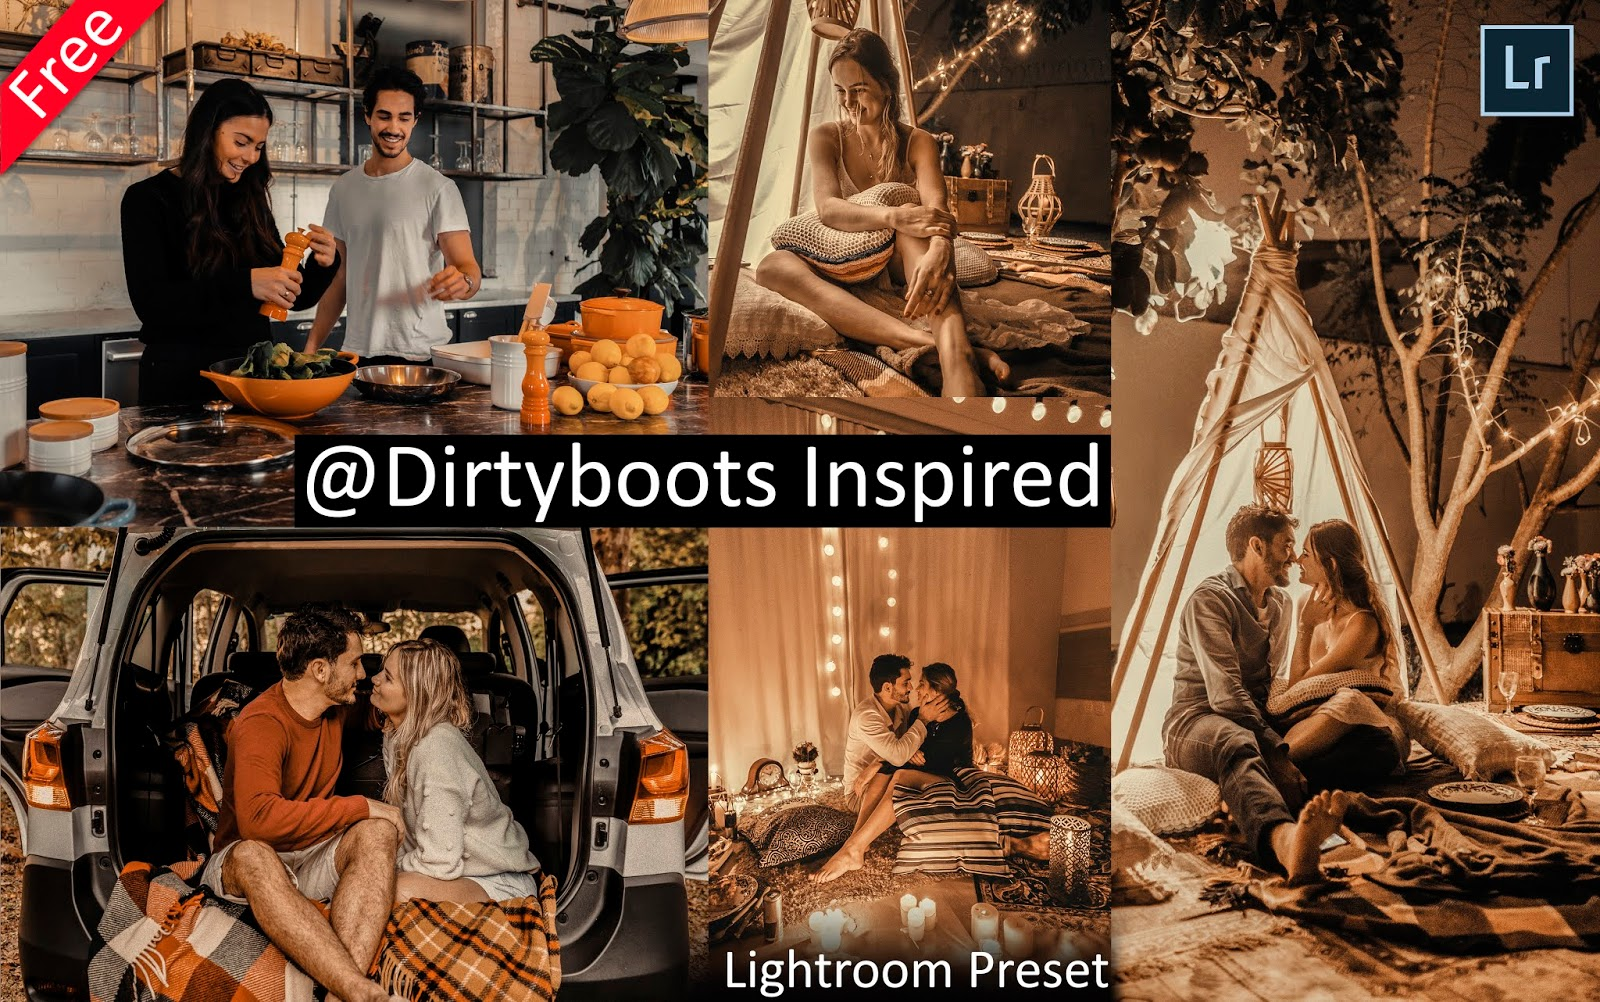 Dirtyboots Inspired Lightroom Presets for Free | How to Edit Photos Like @Dirtyboots in Lightroom